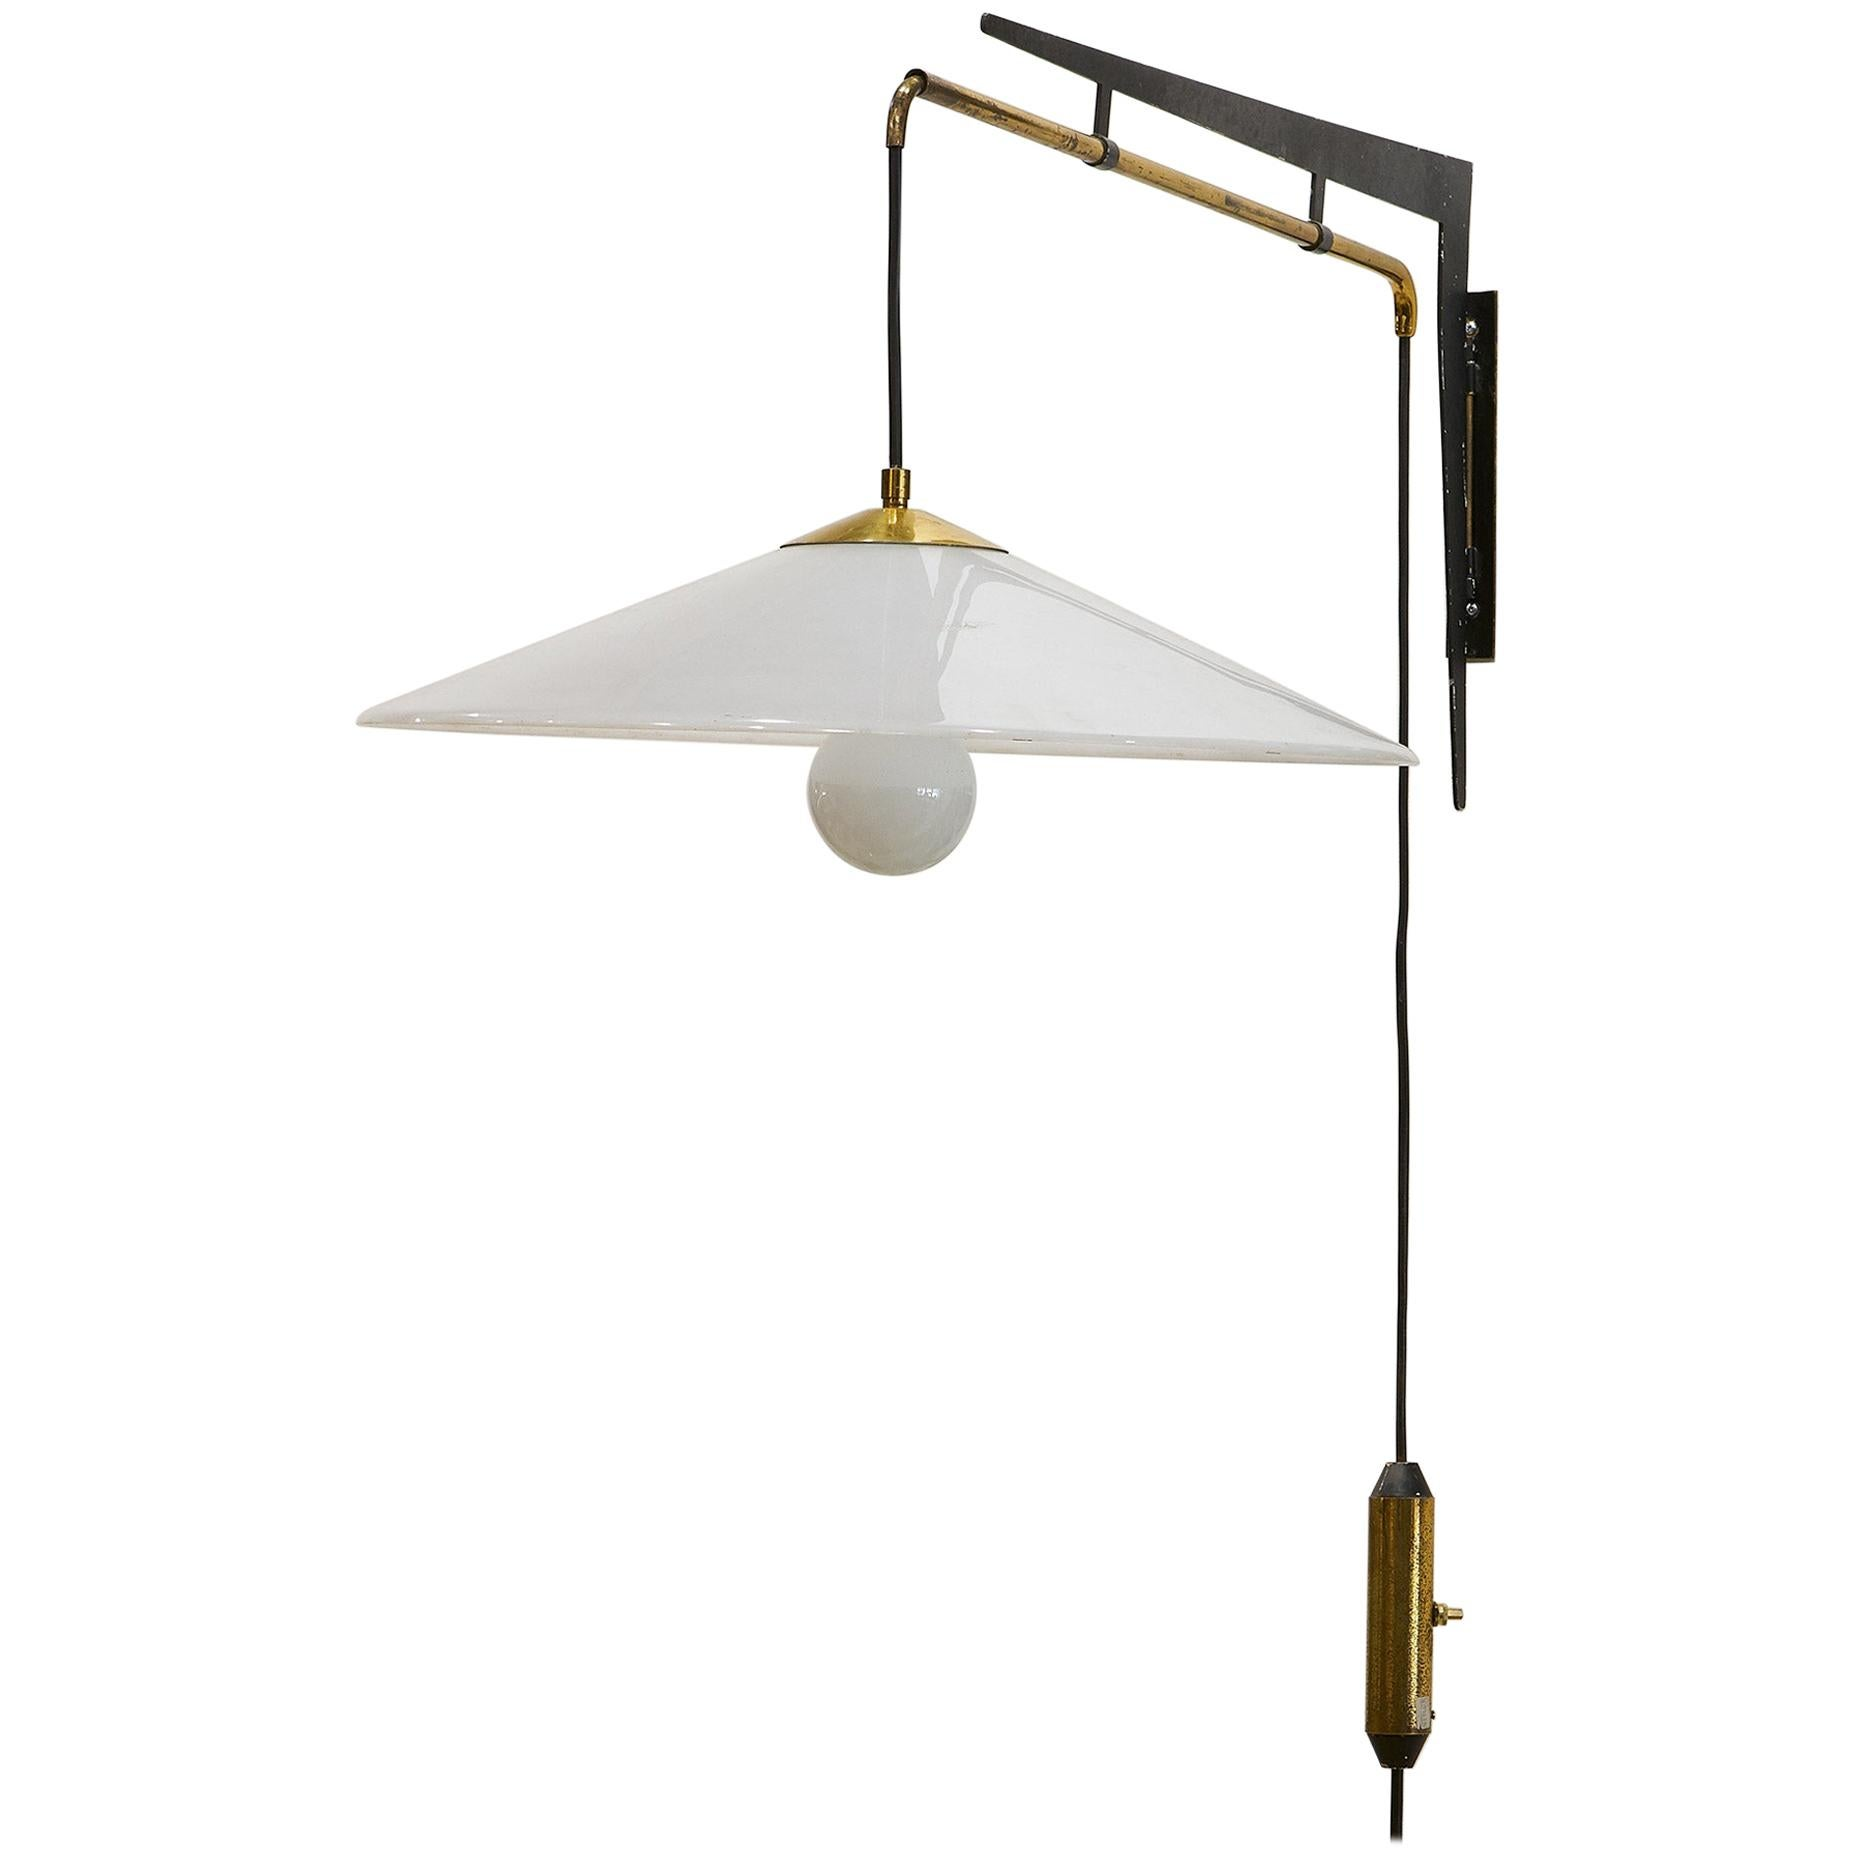 Stilux Counterweight Adjustable Swing Arm Wall Light, Italy, 1960s